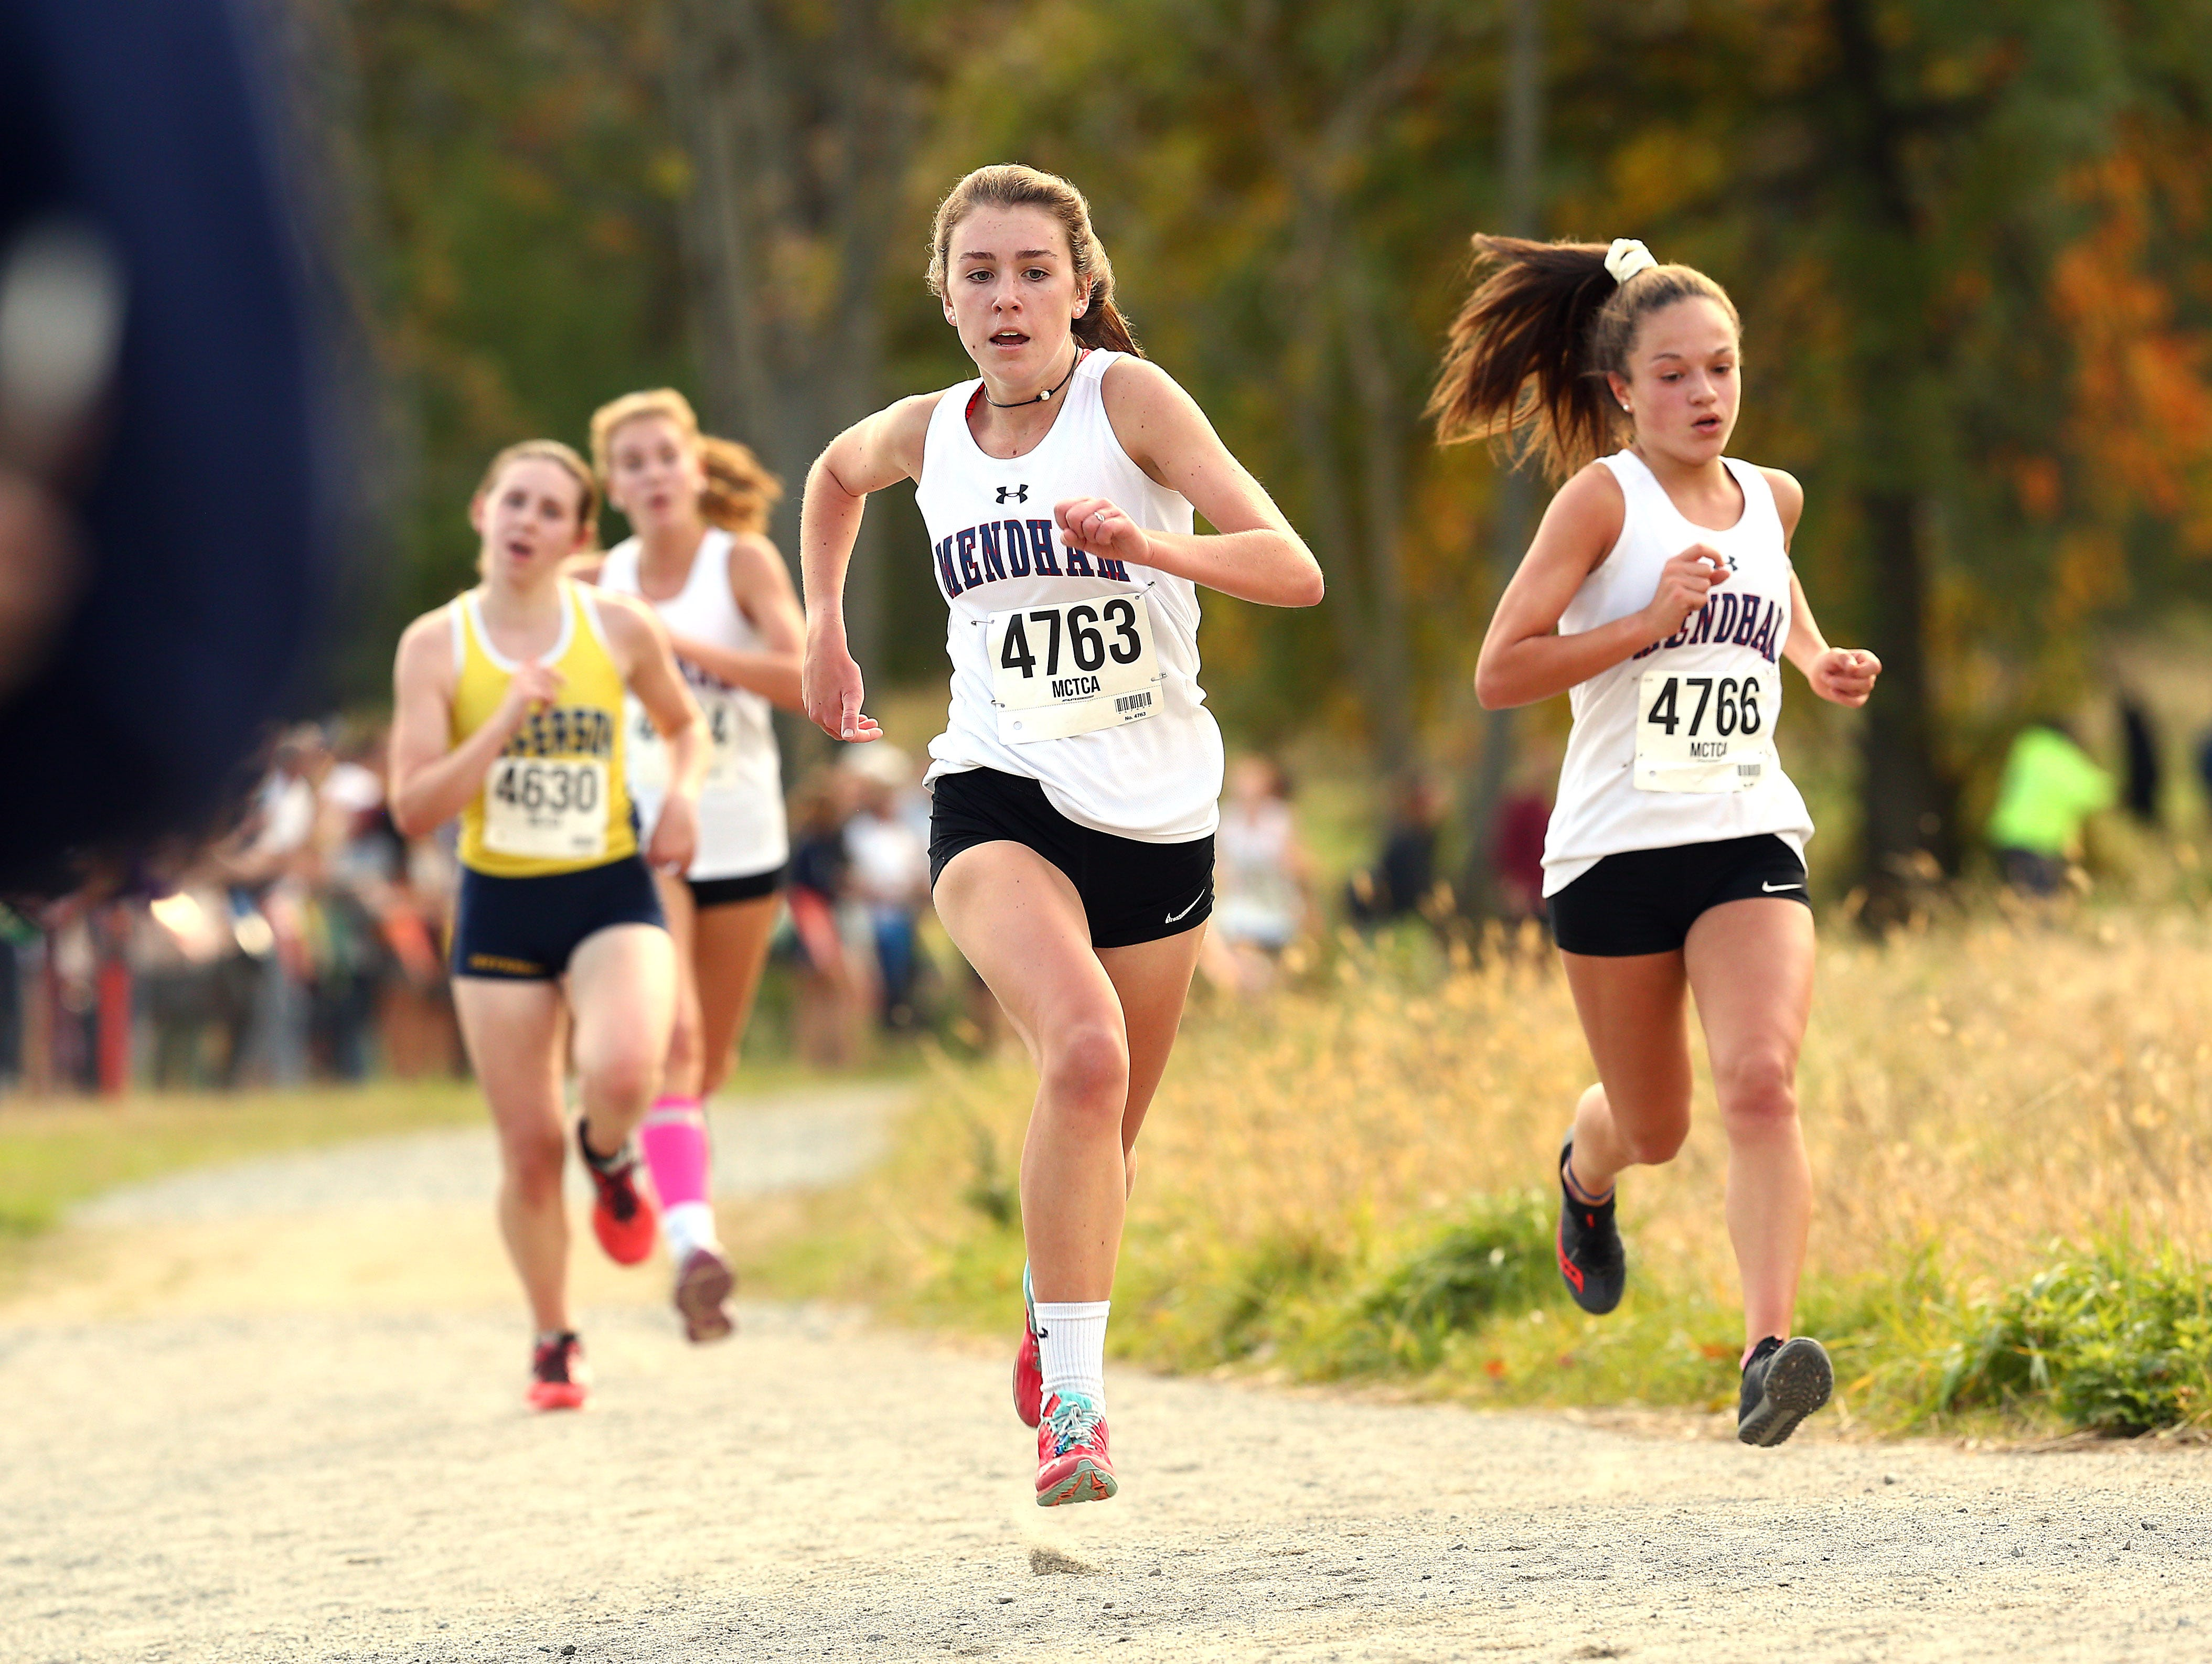 Mendham's Megan Timoney and Grace Vives come into the finish during the Morris County girls cross country championships at Central Park of Morris County. October 23, 2018, Morris Plains, NJ